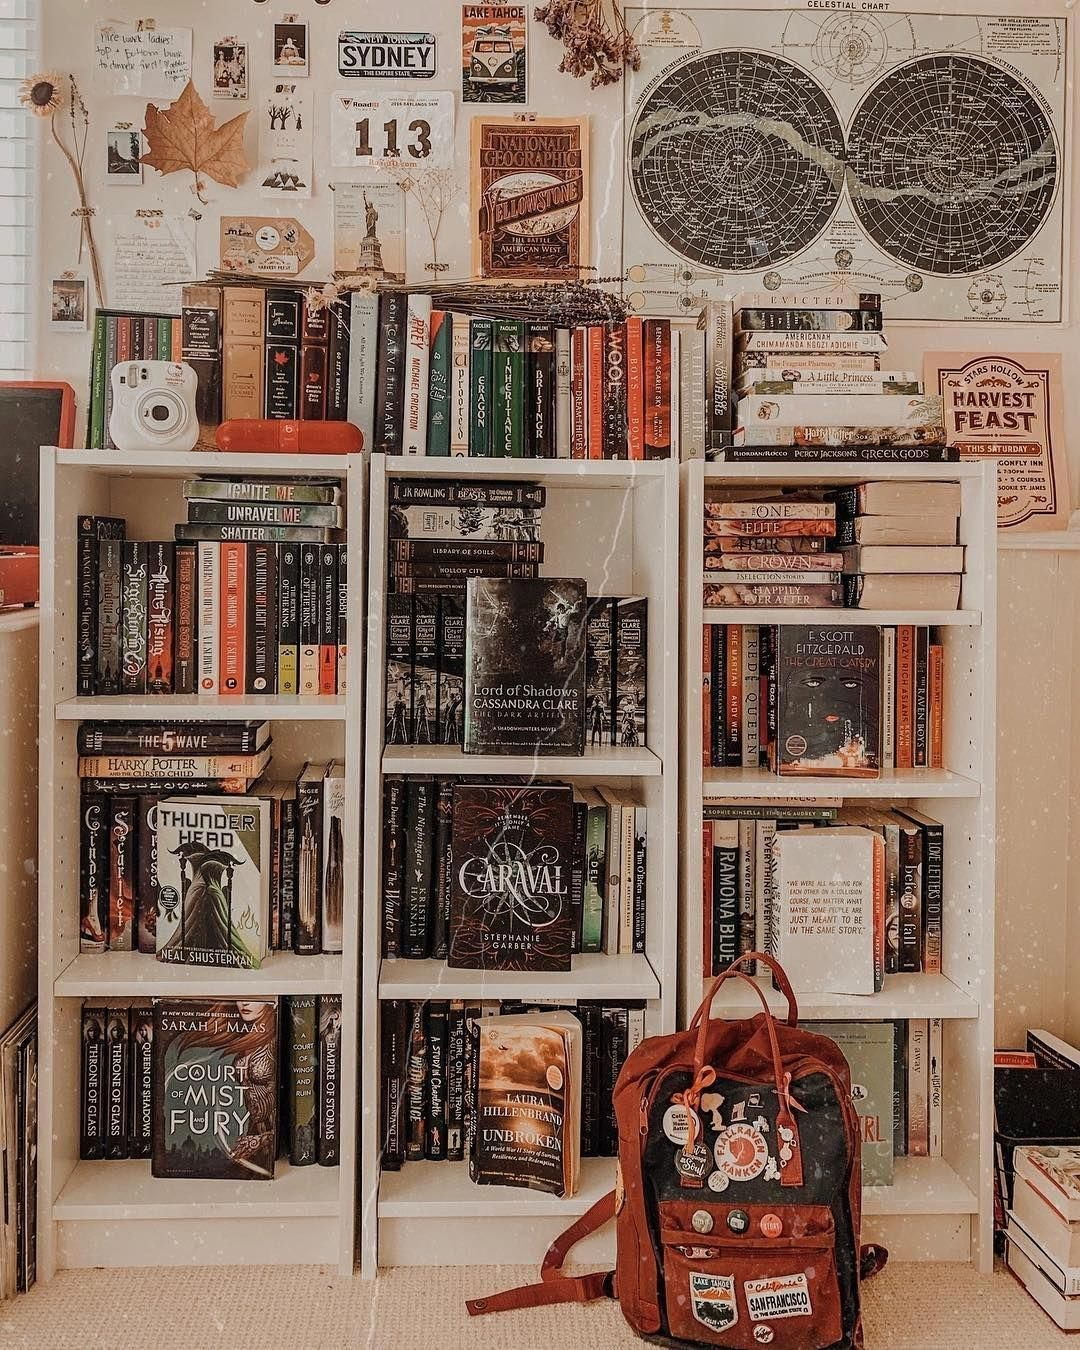 S Y D N E Y On Instagram Kicking Of Thursday With A Shelfie